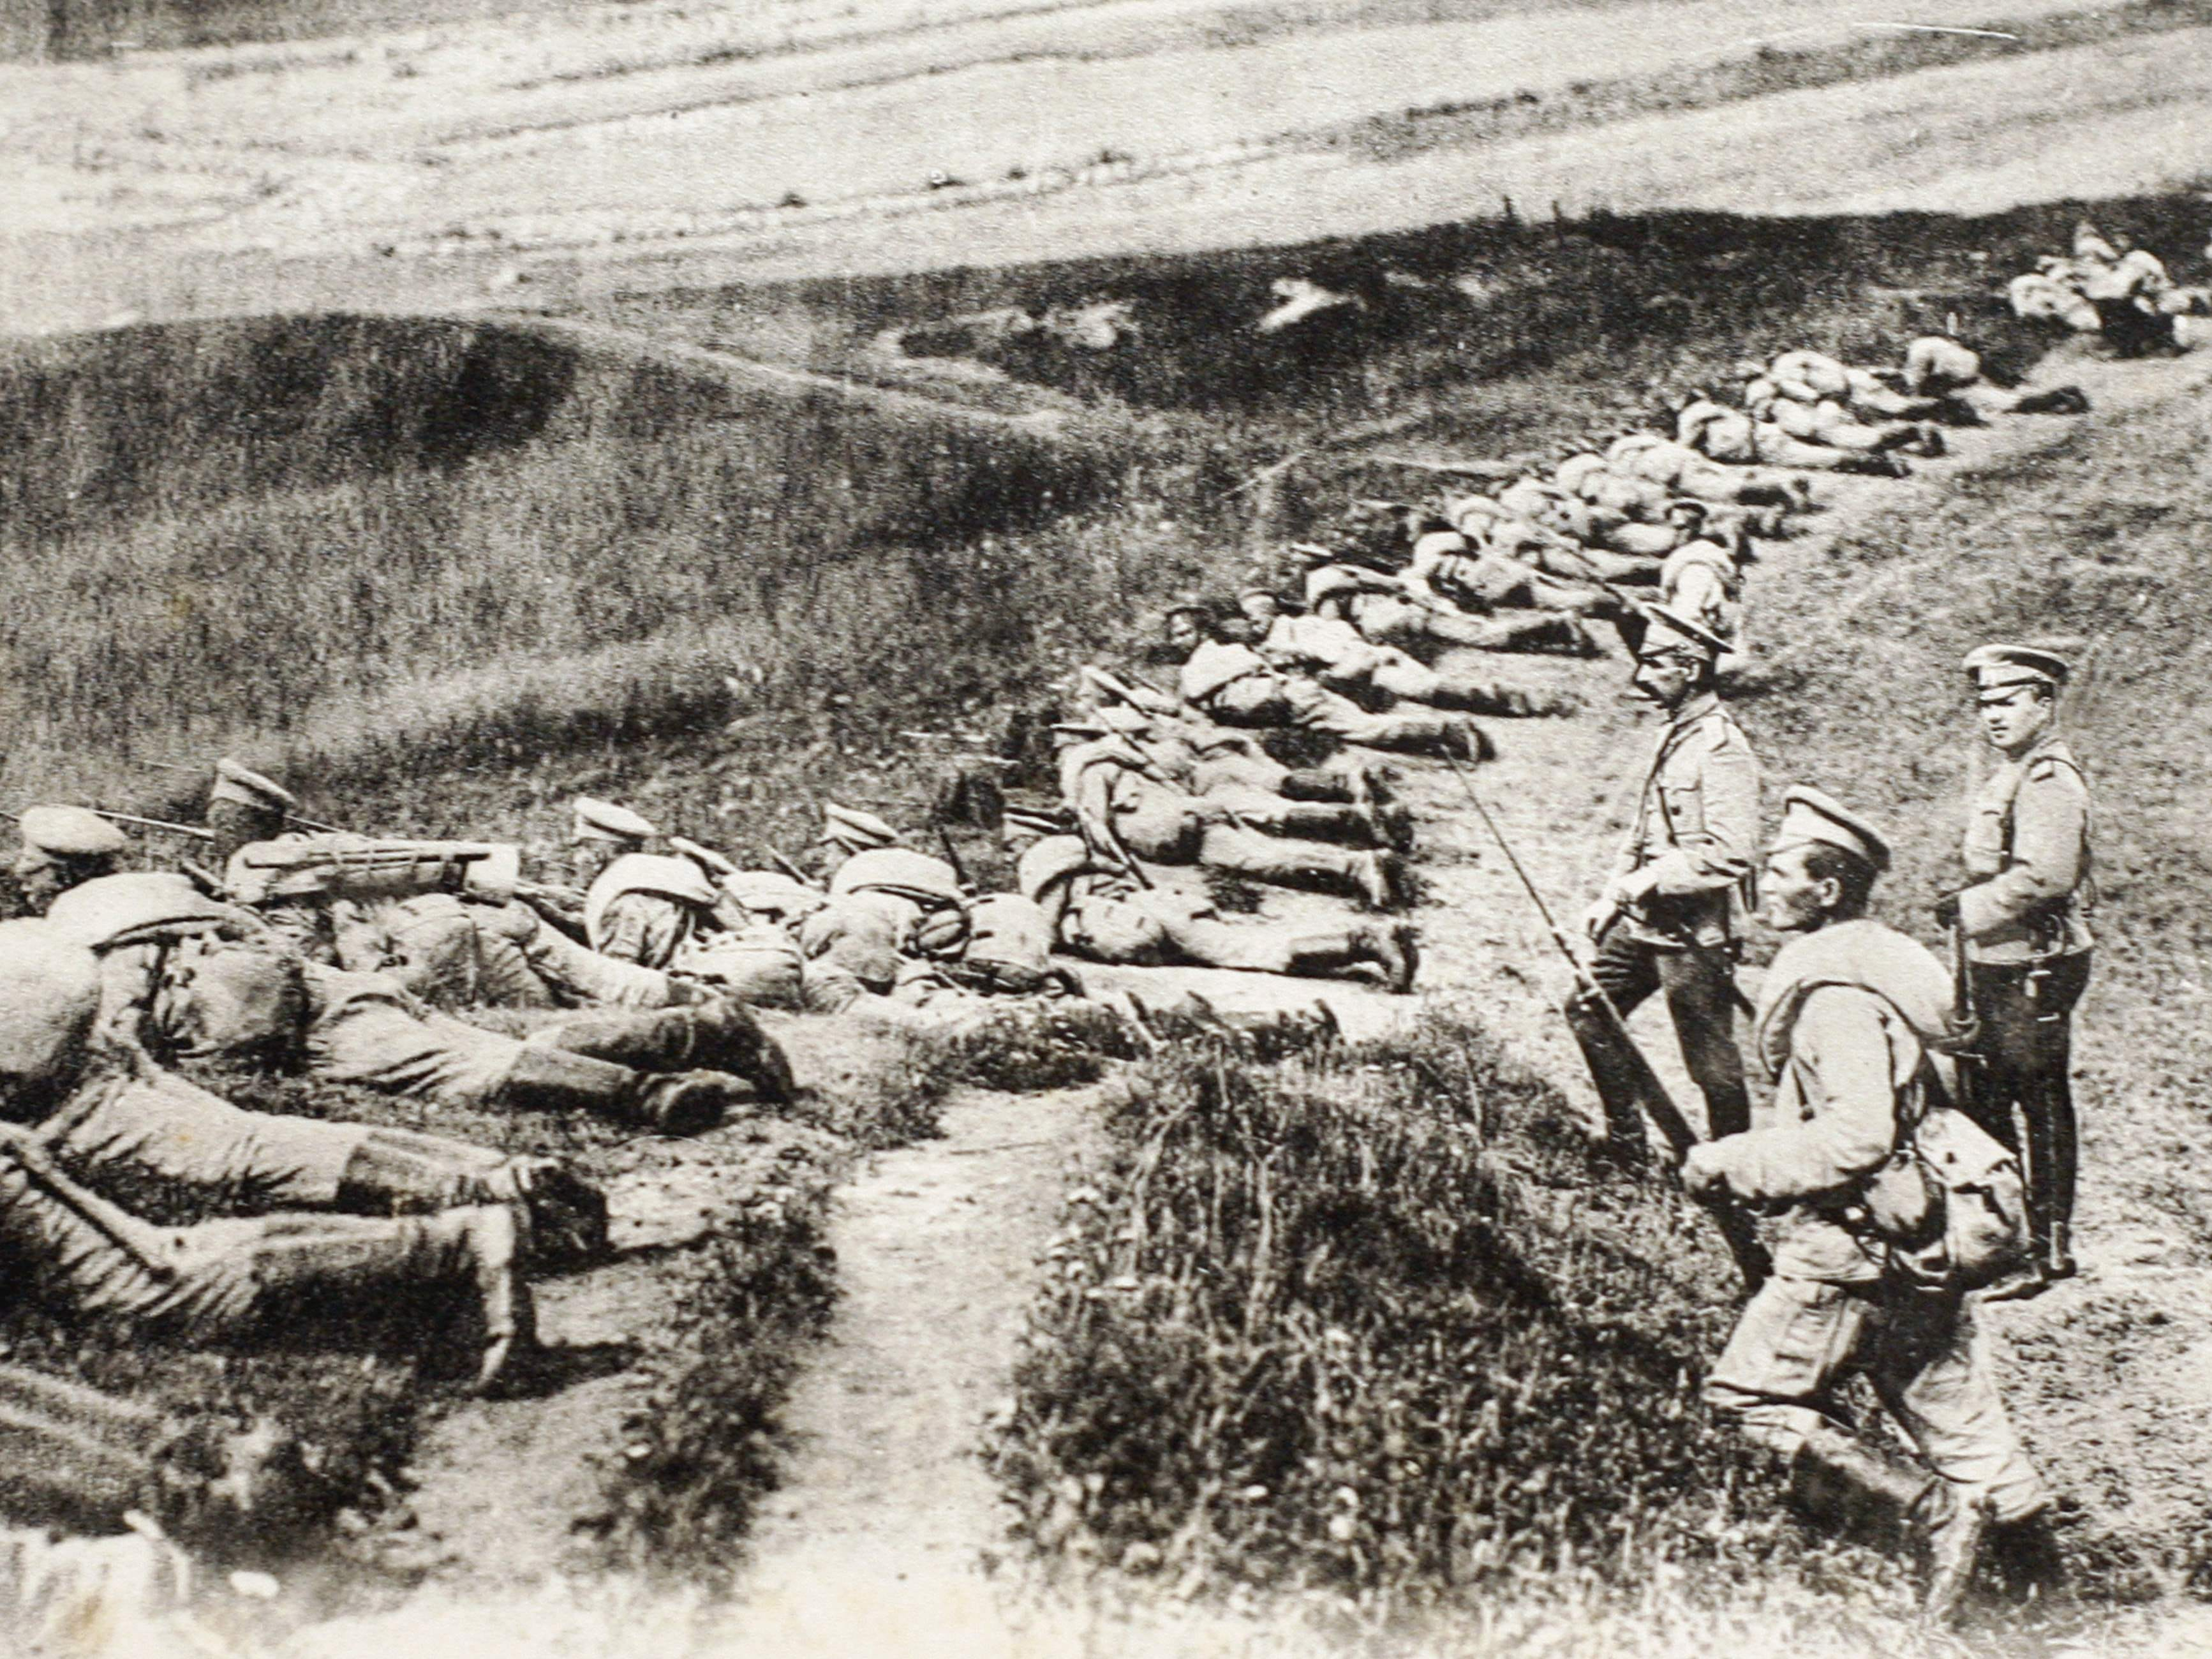 This picture of a postcard released by the Historial de Peronne, Museum of WWI, shows Russian soldiers on the East Prussia front during the WWI.